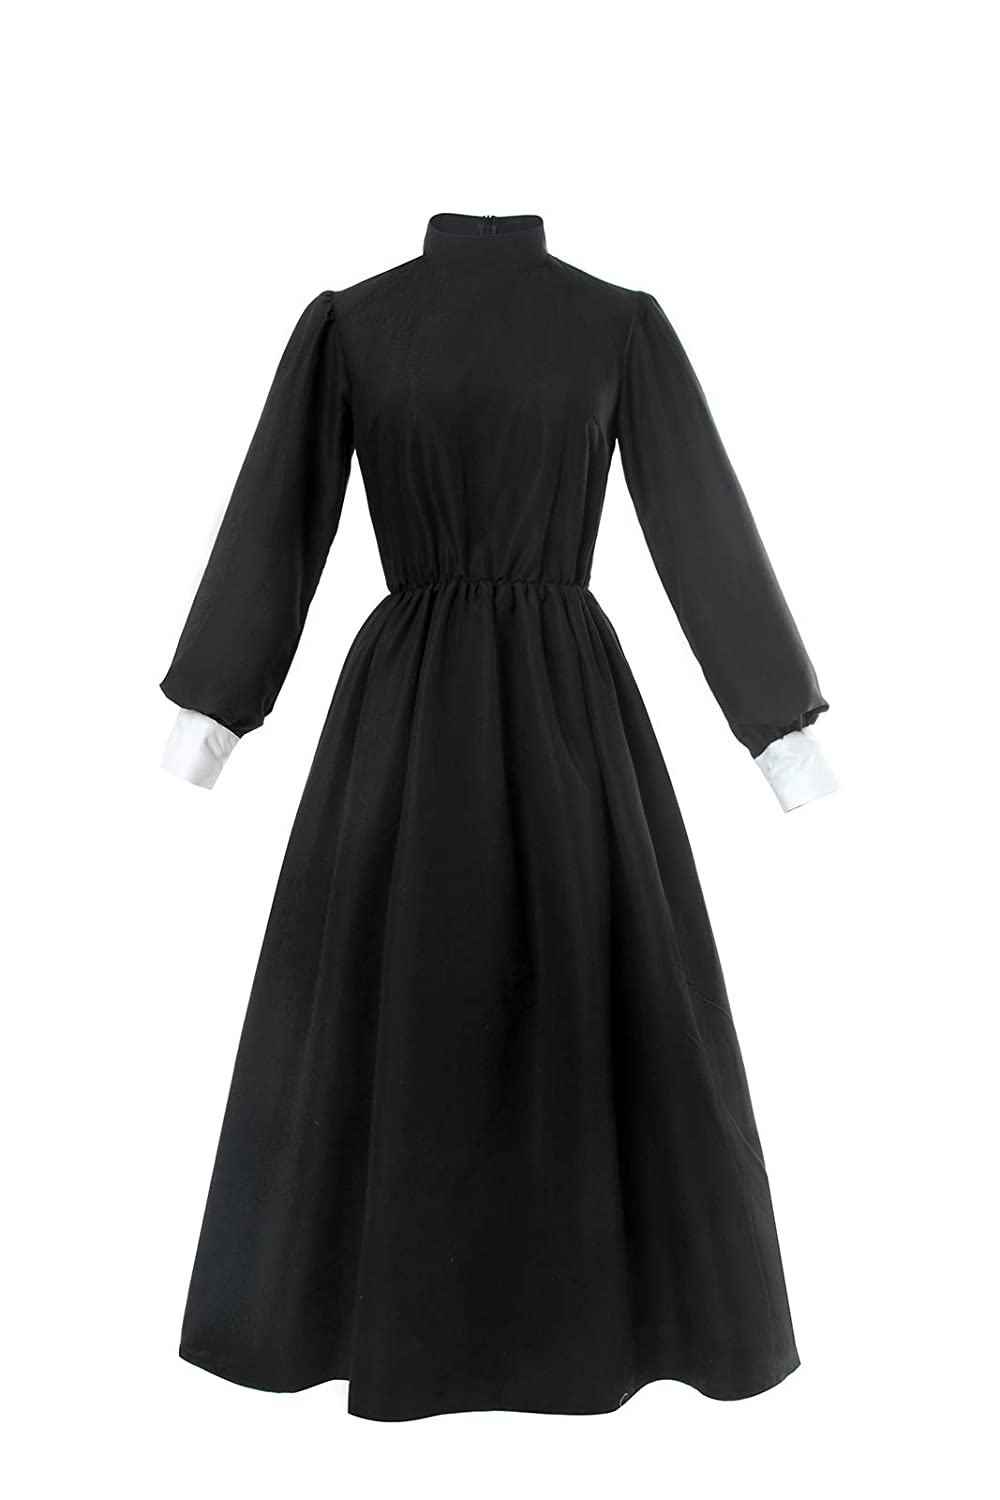 Old Fashioned Dresses | Old Dress Styles 1890 Pioneer Women Costume Floral Prairie Dress Deluxe Colonial Dress Laura Ingalls Costume ROLECOS  $35.99 AT vintagedancer.com